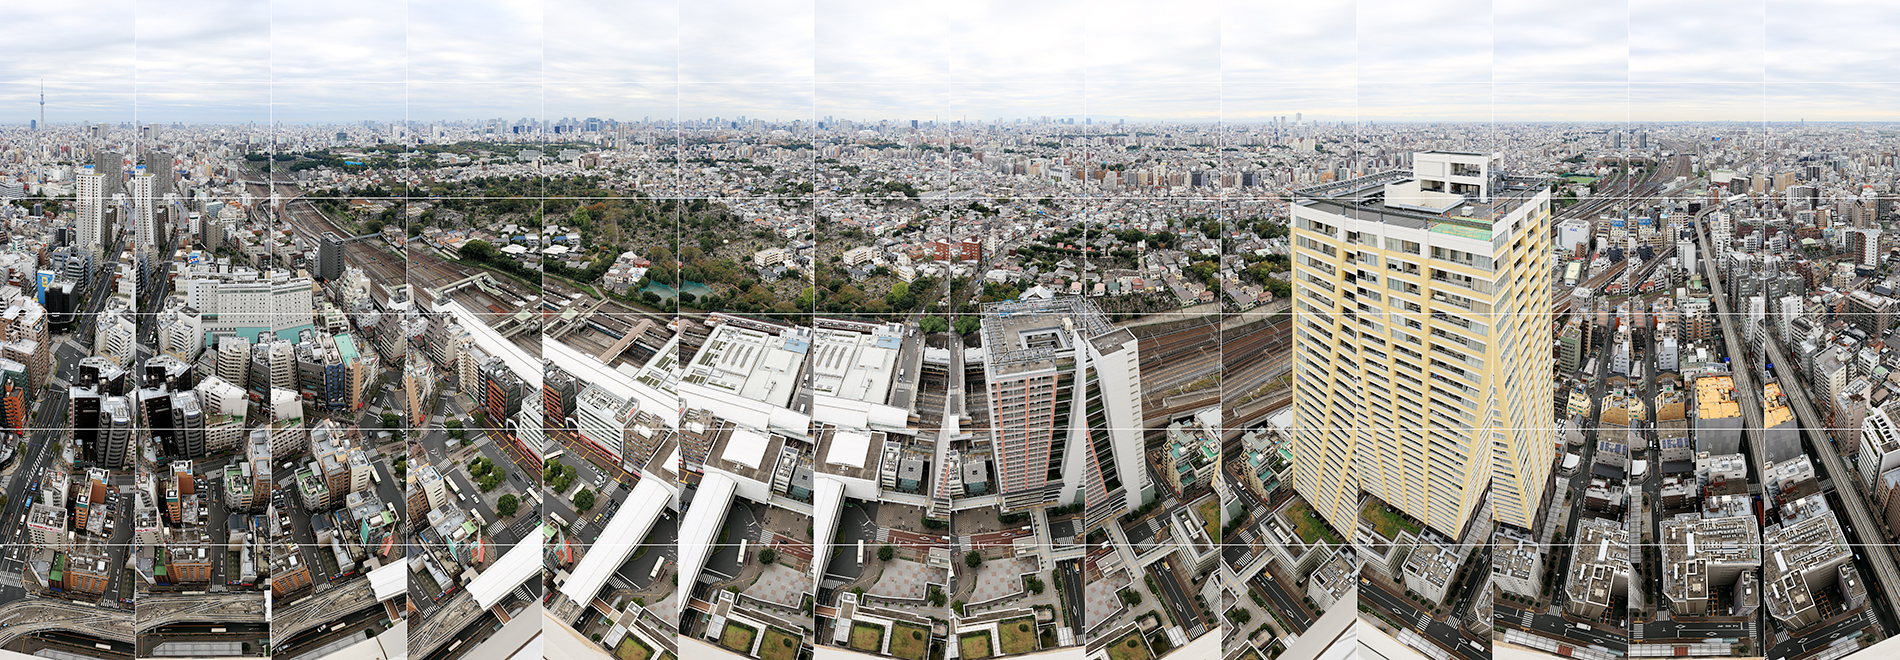 Tokyo is seen from the rooftop in Nishi-Nippori. The photography can be seen as conceptual and belonging to the Kunstakademie Düsseldorf Fotoschule of Hilla and Bernd Becher, Laurenz Berges, Andreas Gursky, Candida Höfer, Axel Hütte, Simone Nieweg, Thomas Ruff, Thomas Struth, Petra Wunderlich, Edward Burtynsky